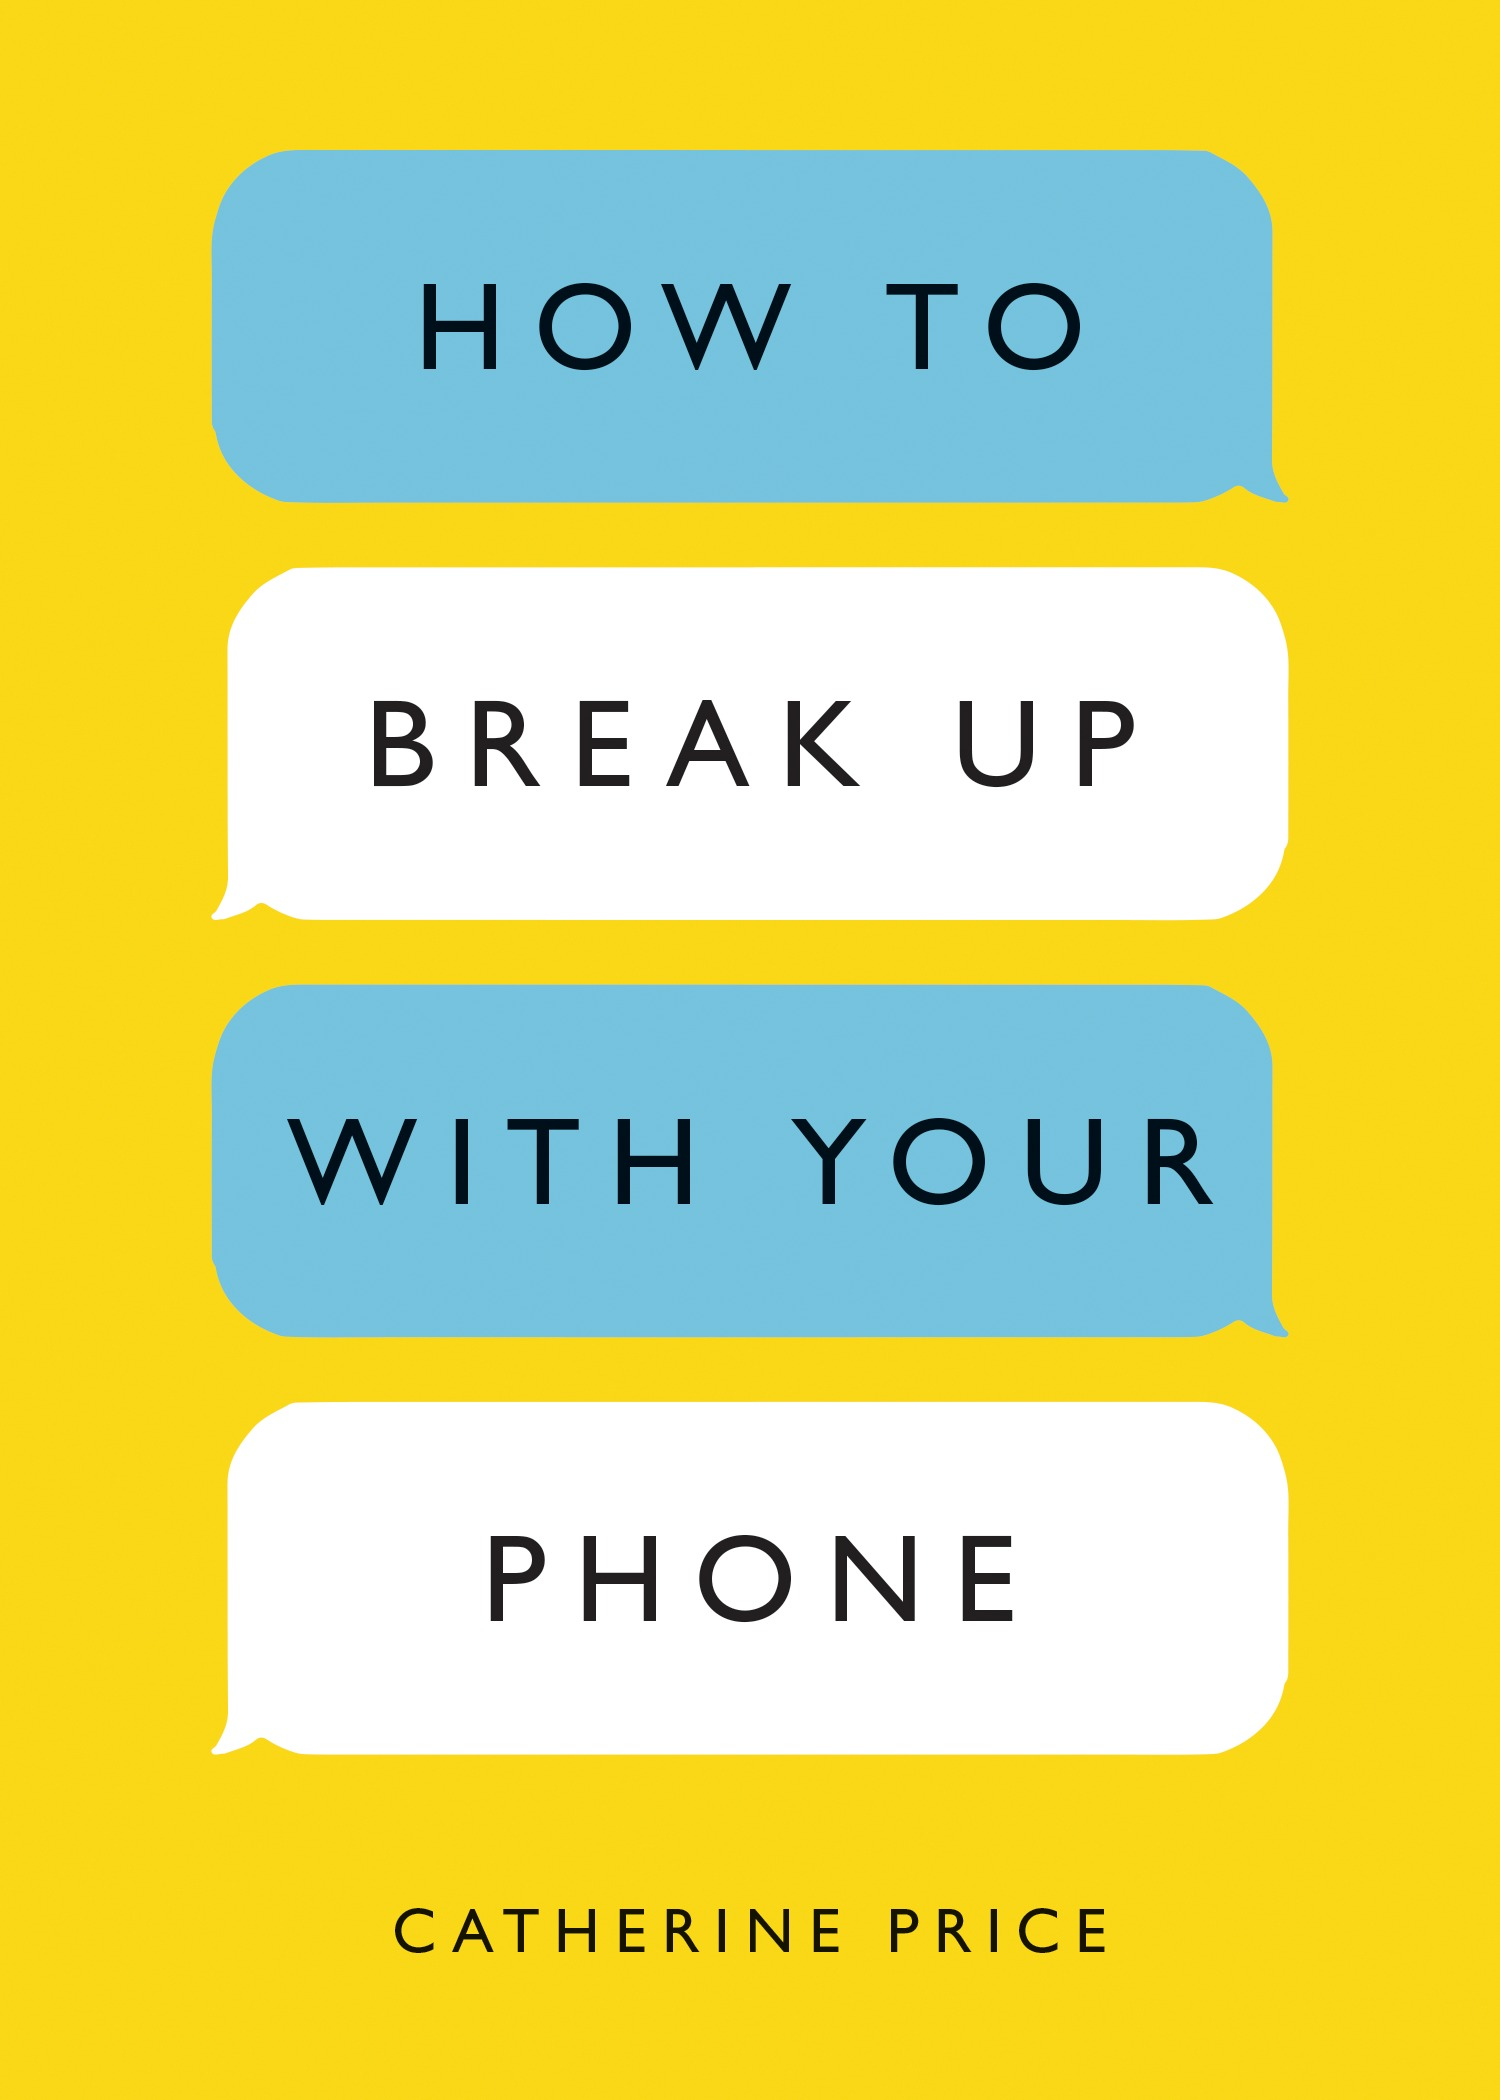 How to break up with your phone - Catherine Price.jpeg